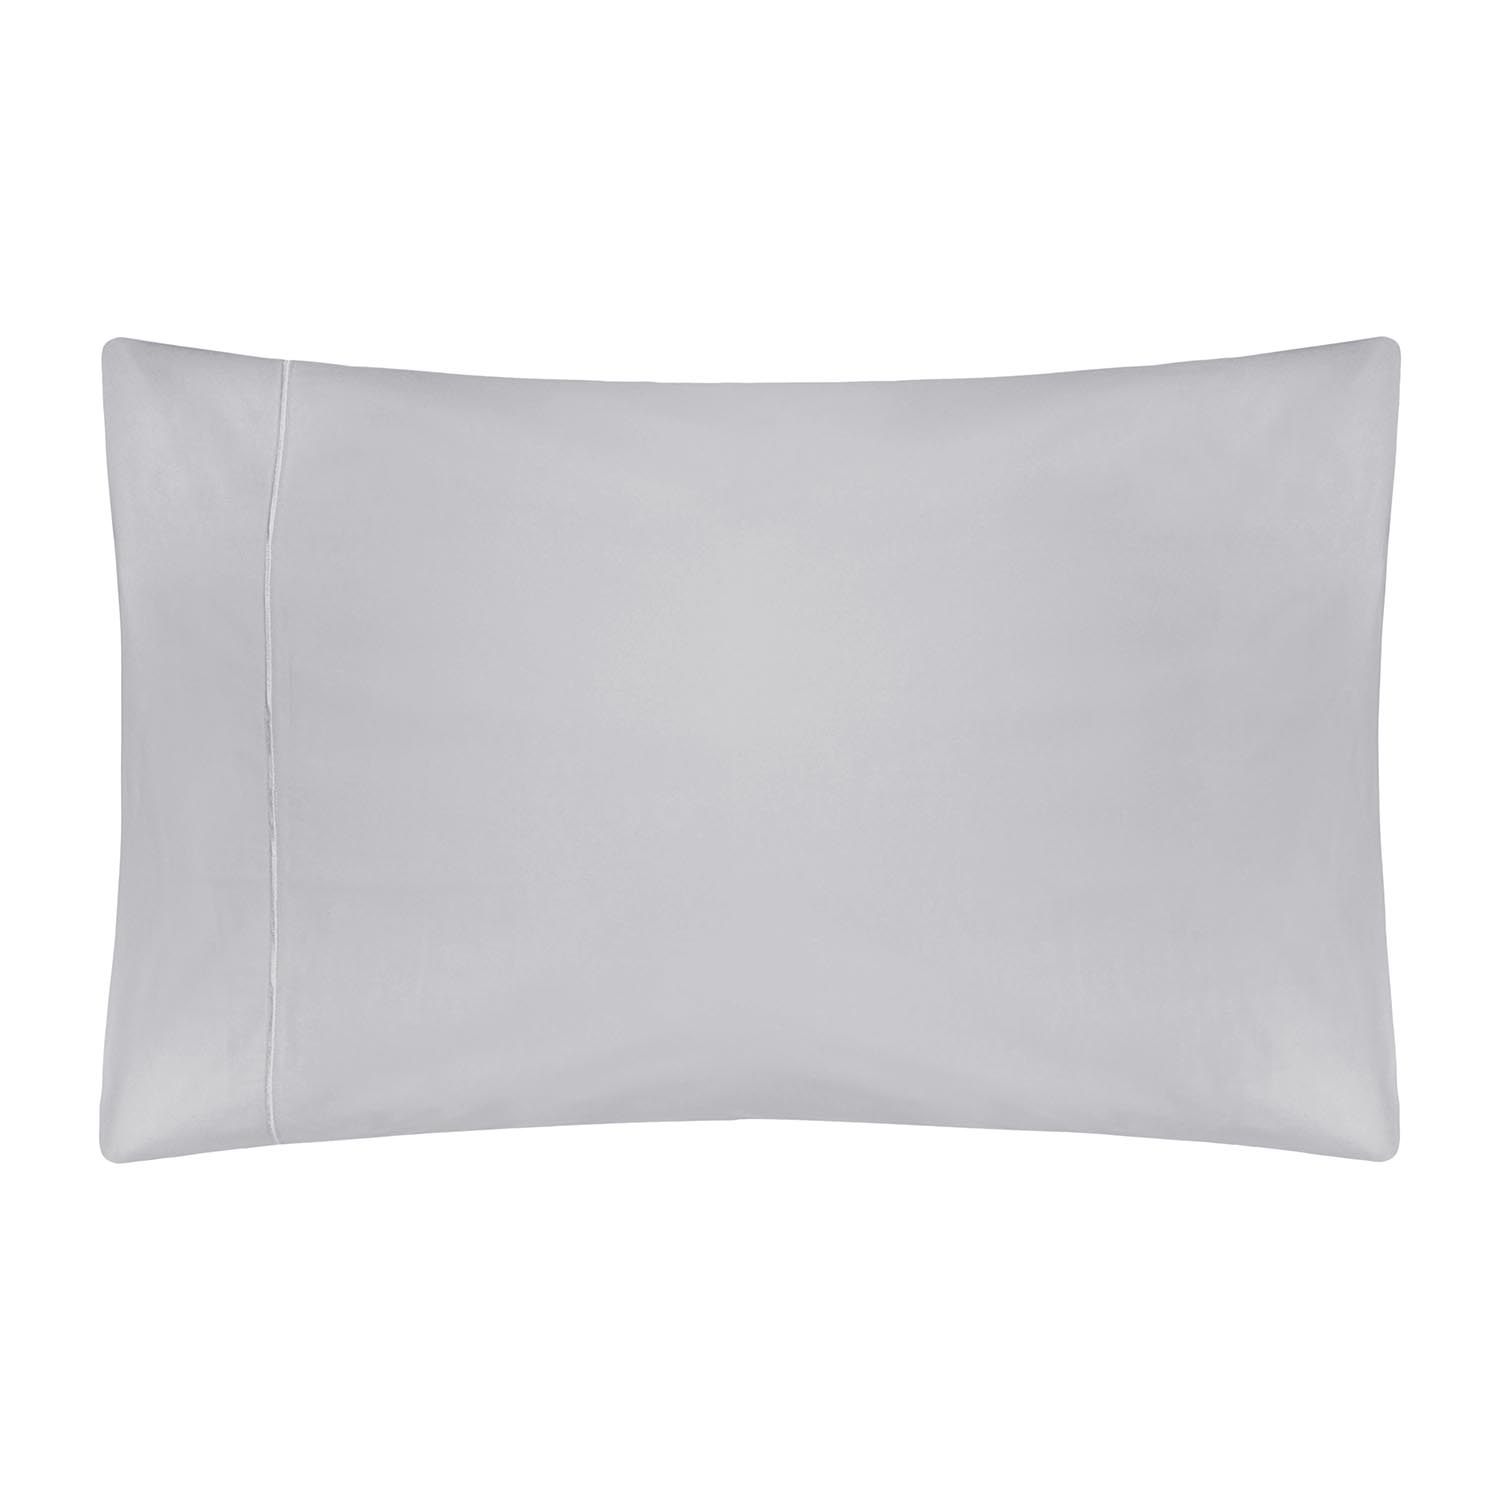 Belledorm 200 Thread Count Polycotton Pillowcase Cloud